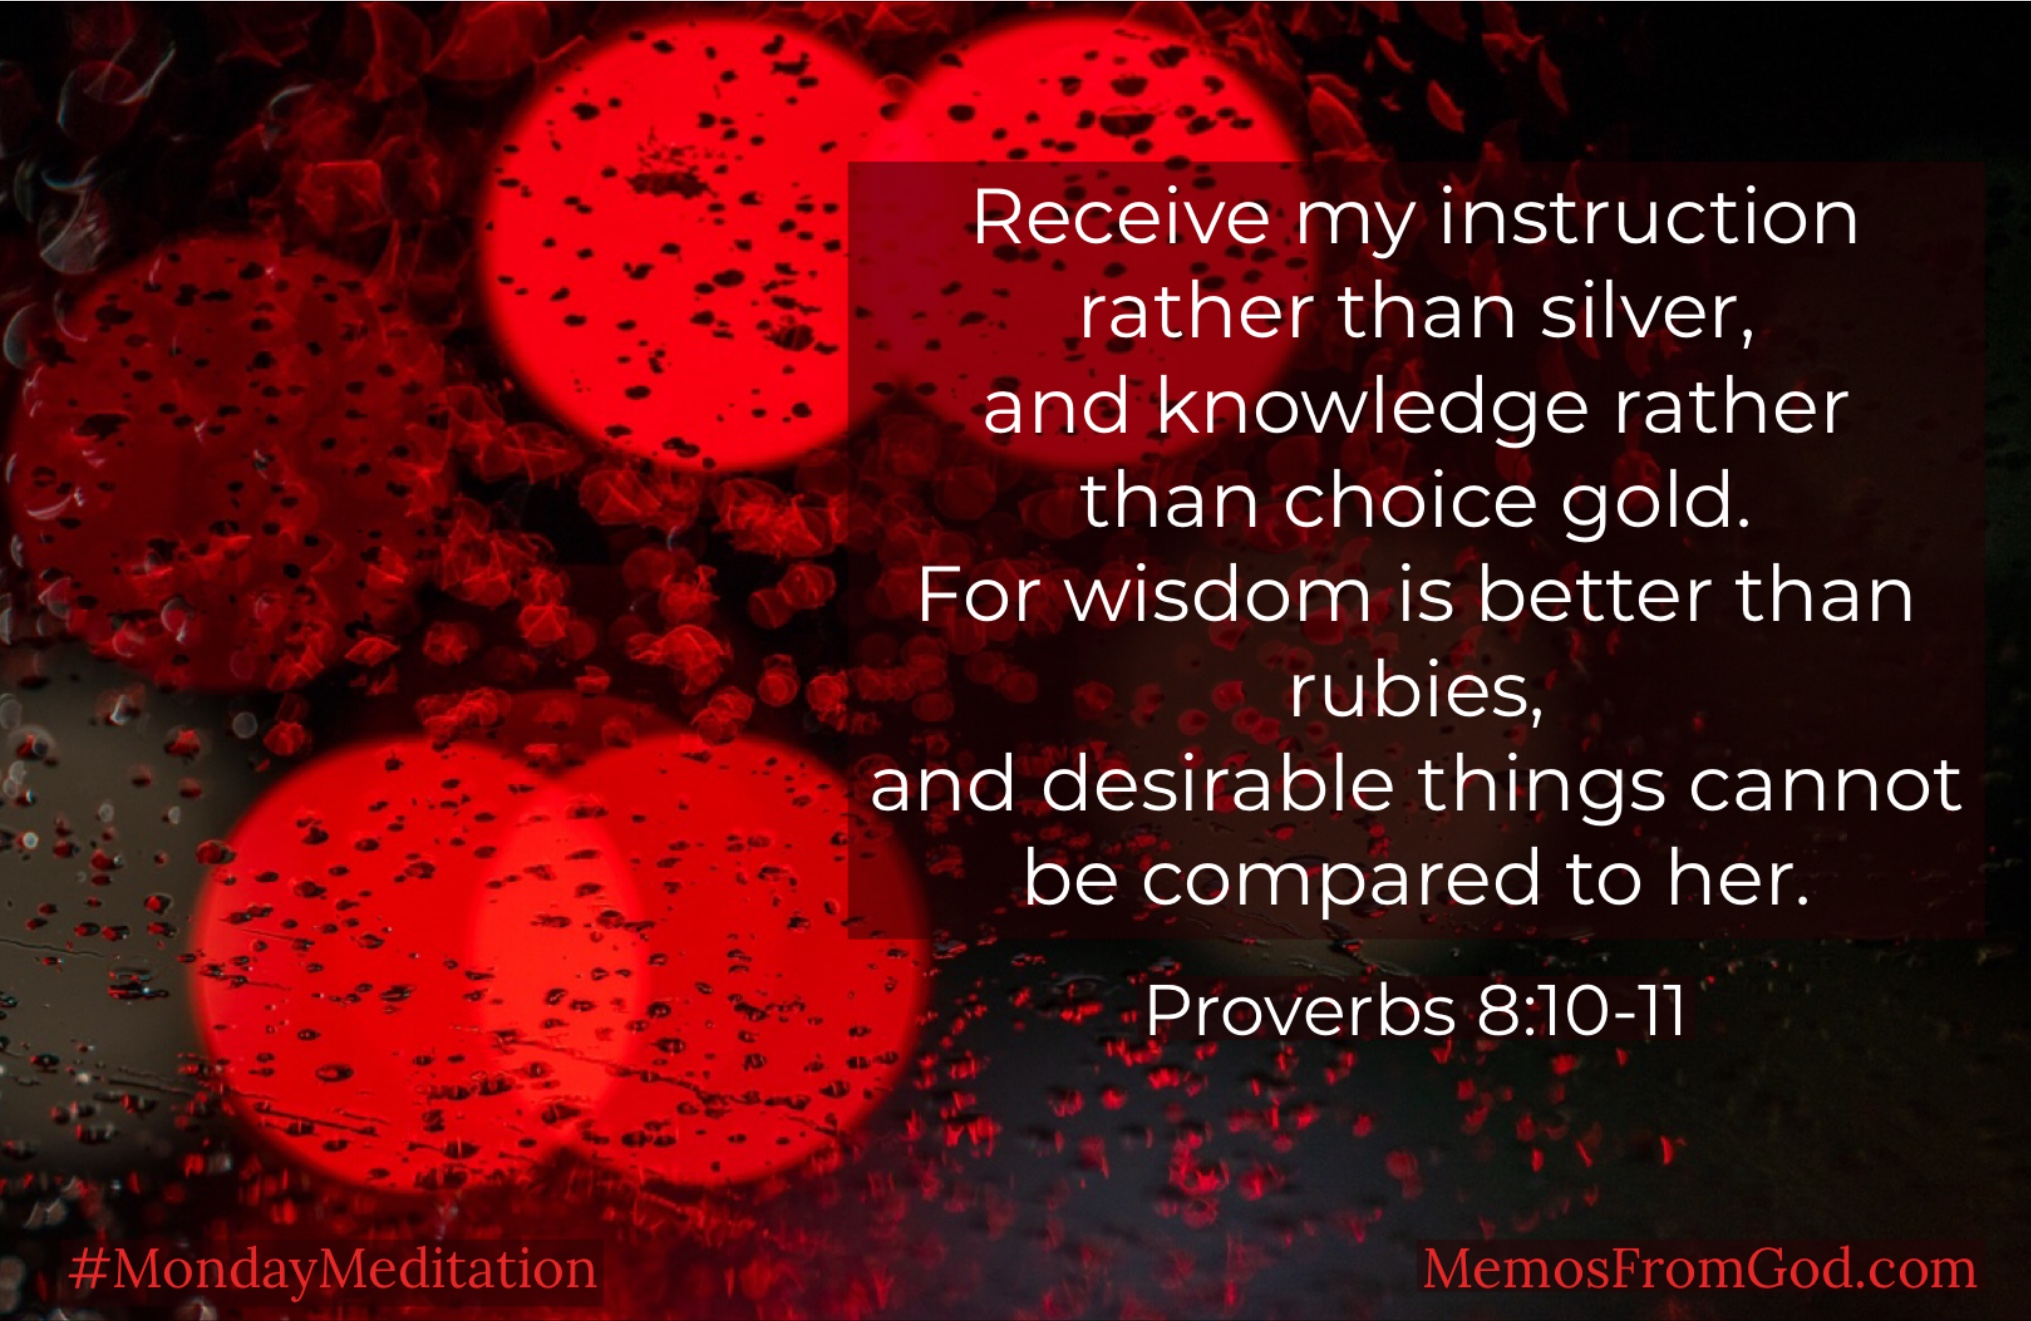 Receive my instruction rather than silver, and knowledge rather than choice gold. For wisdom is better than rubies, and desirable things cannot be compared to her. Proverbs 8:10-11